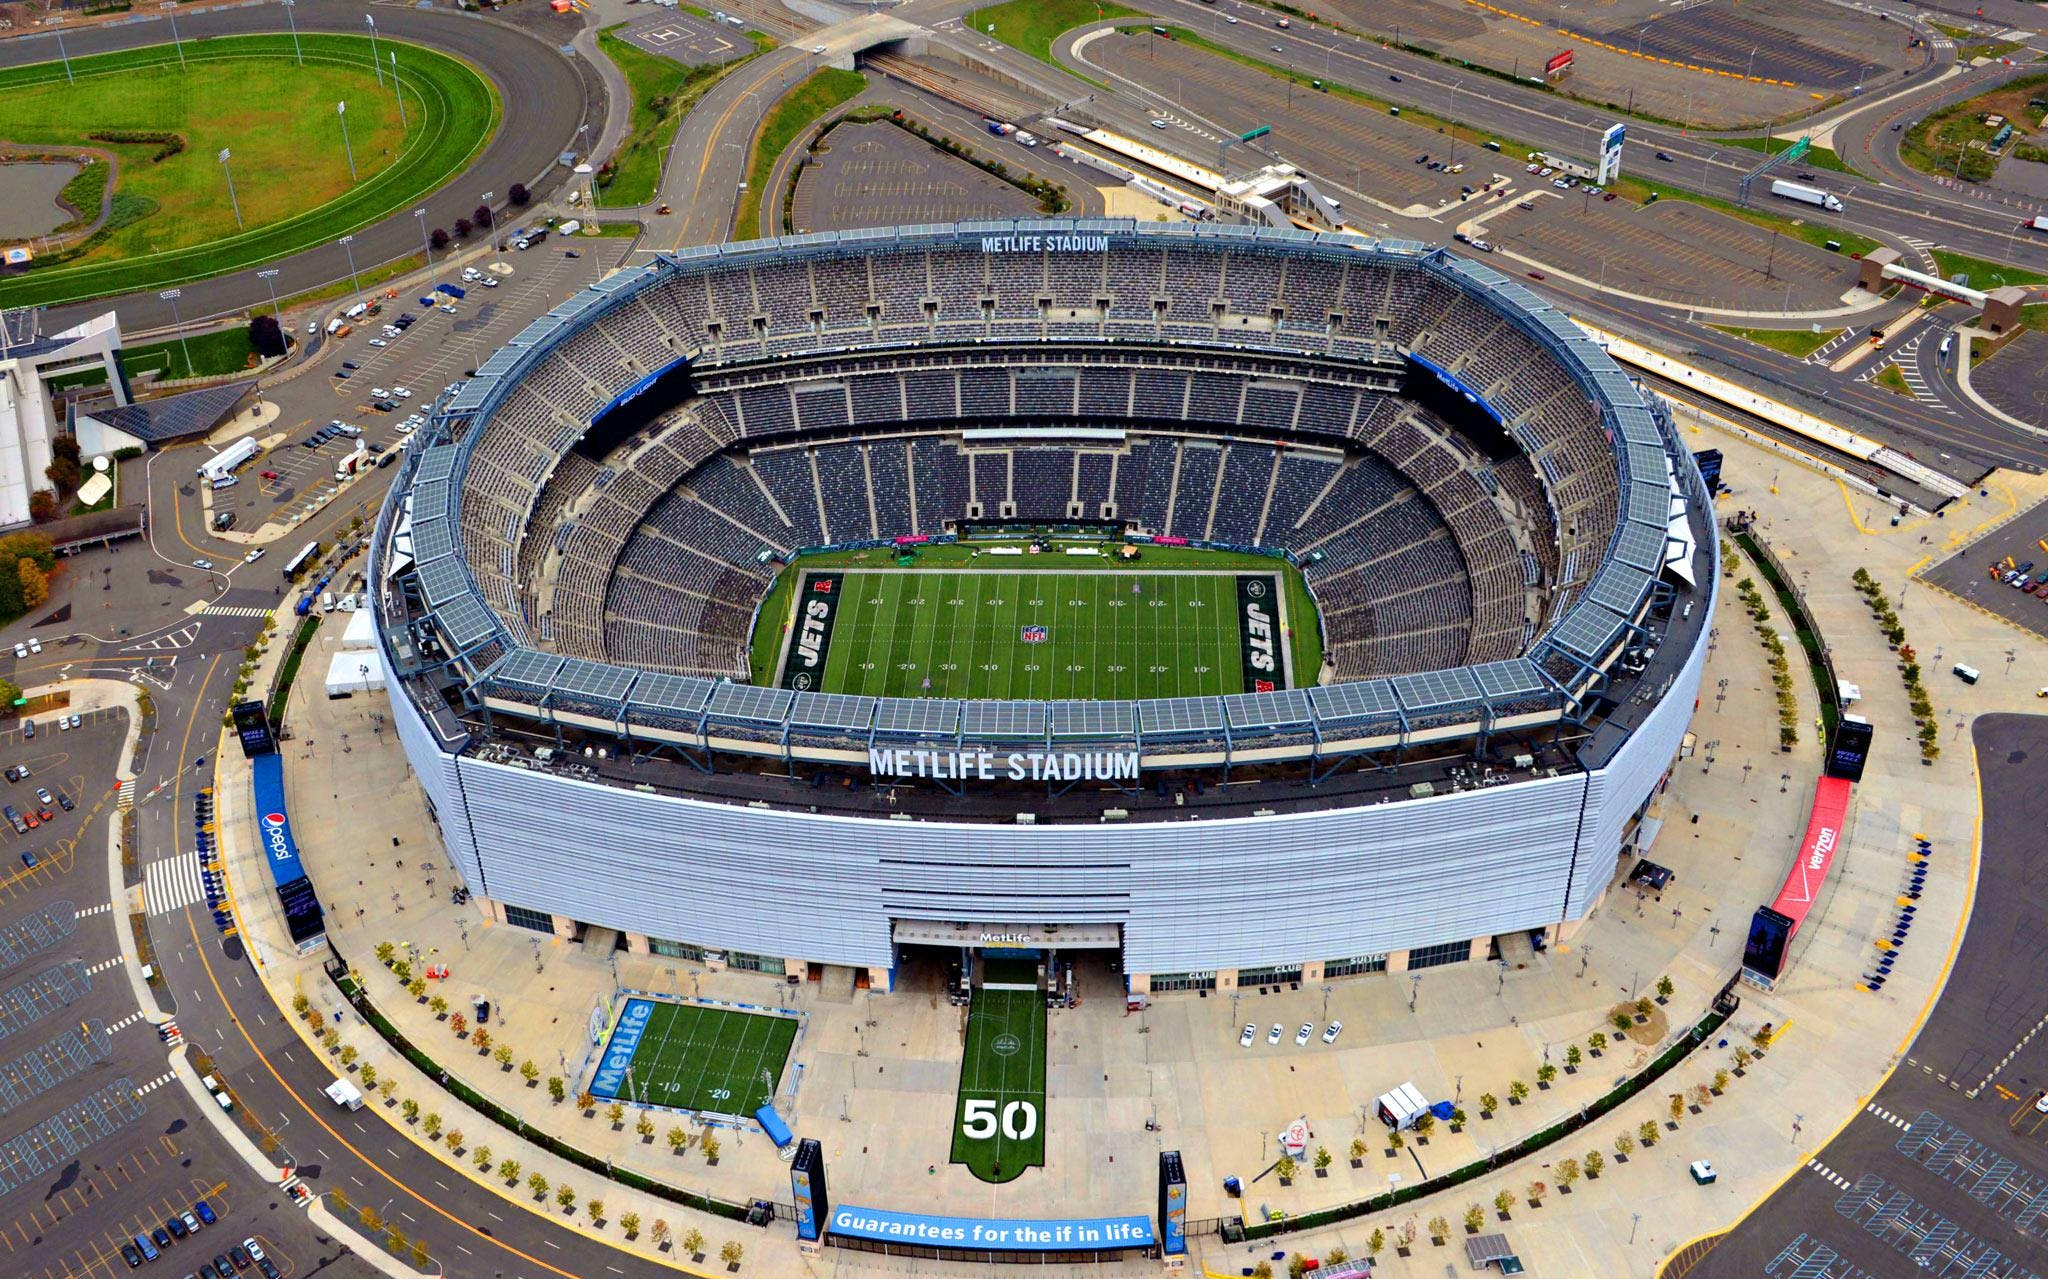 metlife stadium tour-3